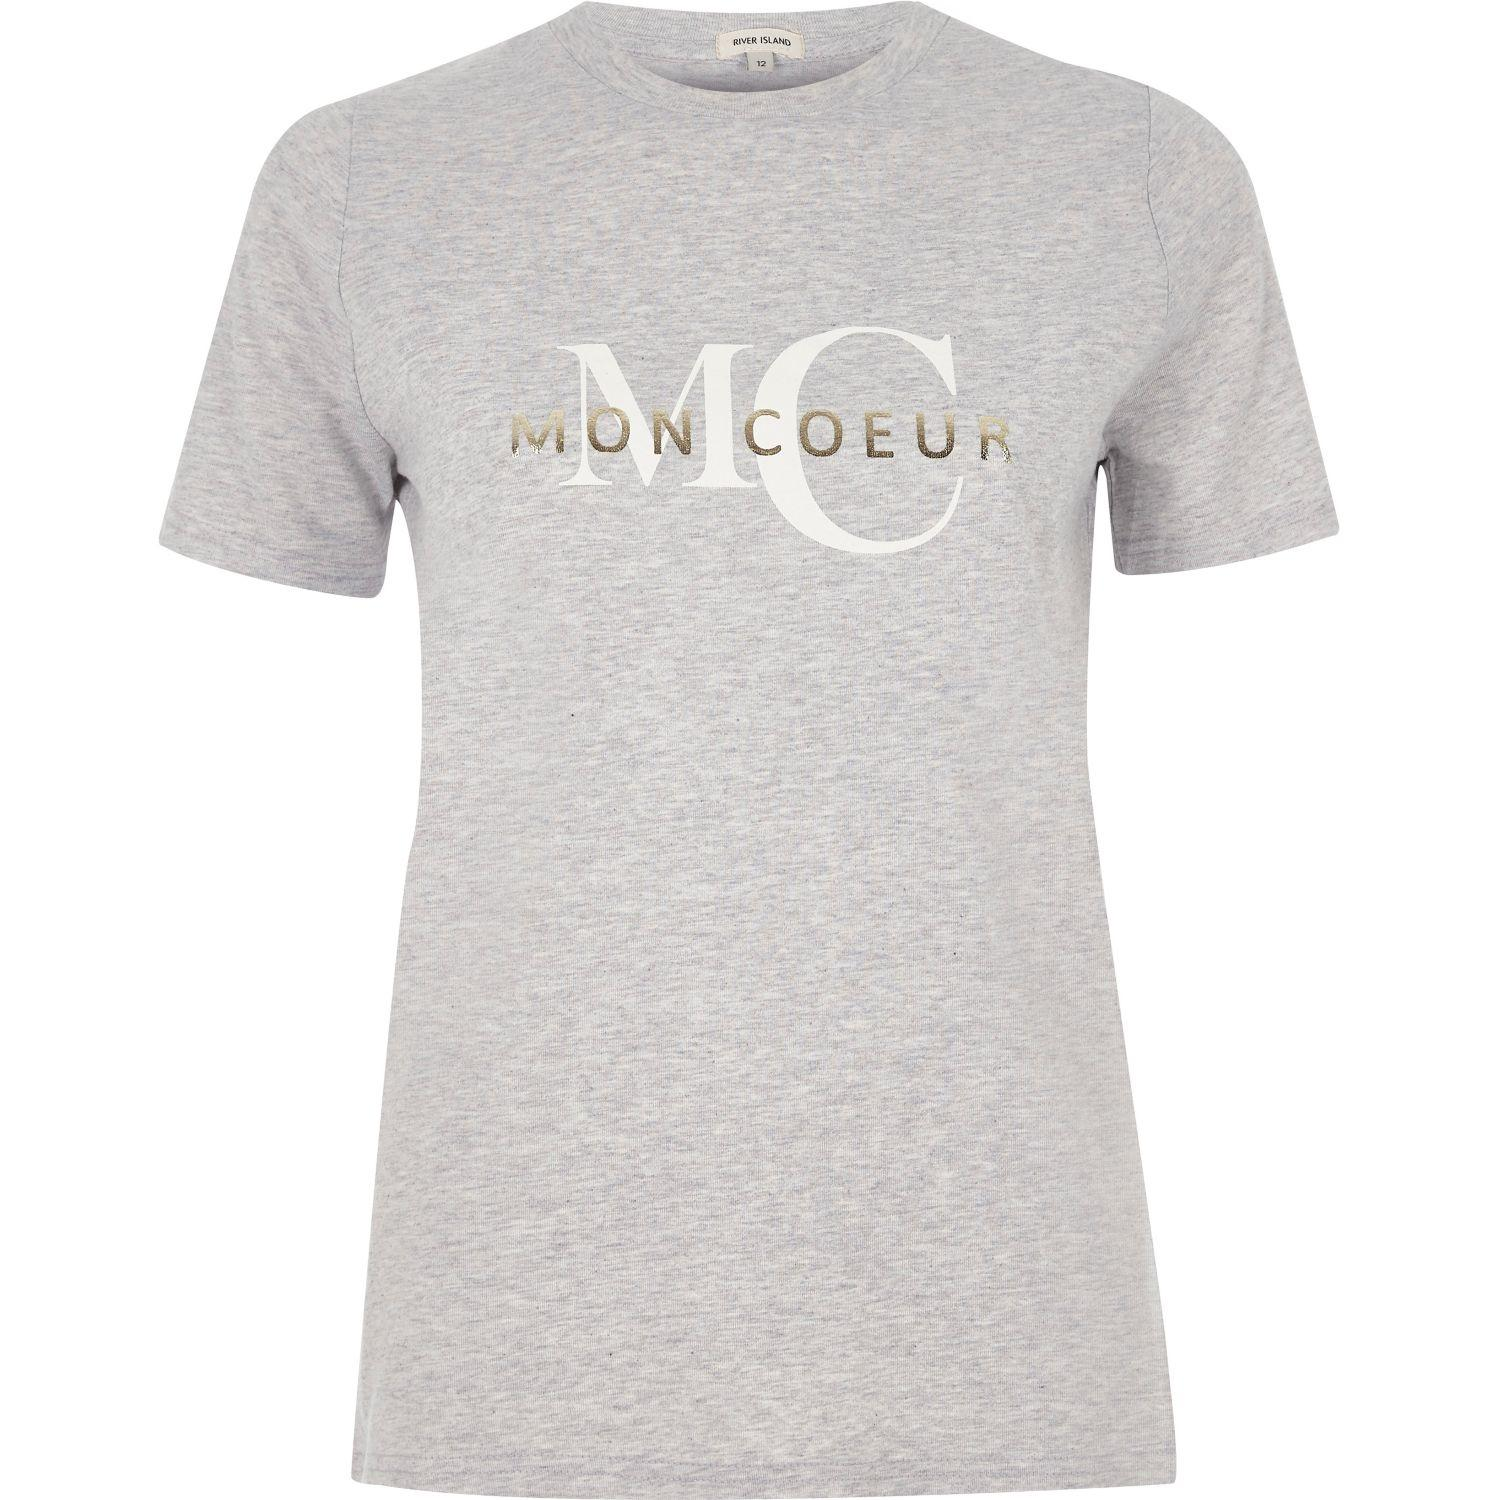 Womens White Mon Coeur fitted T-shirt River Island For Sale Online Reliable For Sale Cheap 2018 Unisex Clearance Fast Delivery Limited Edition qXdvFo